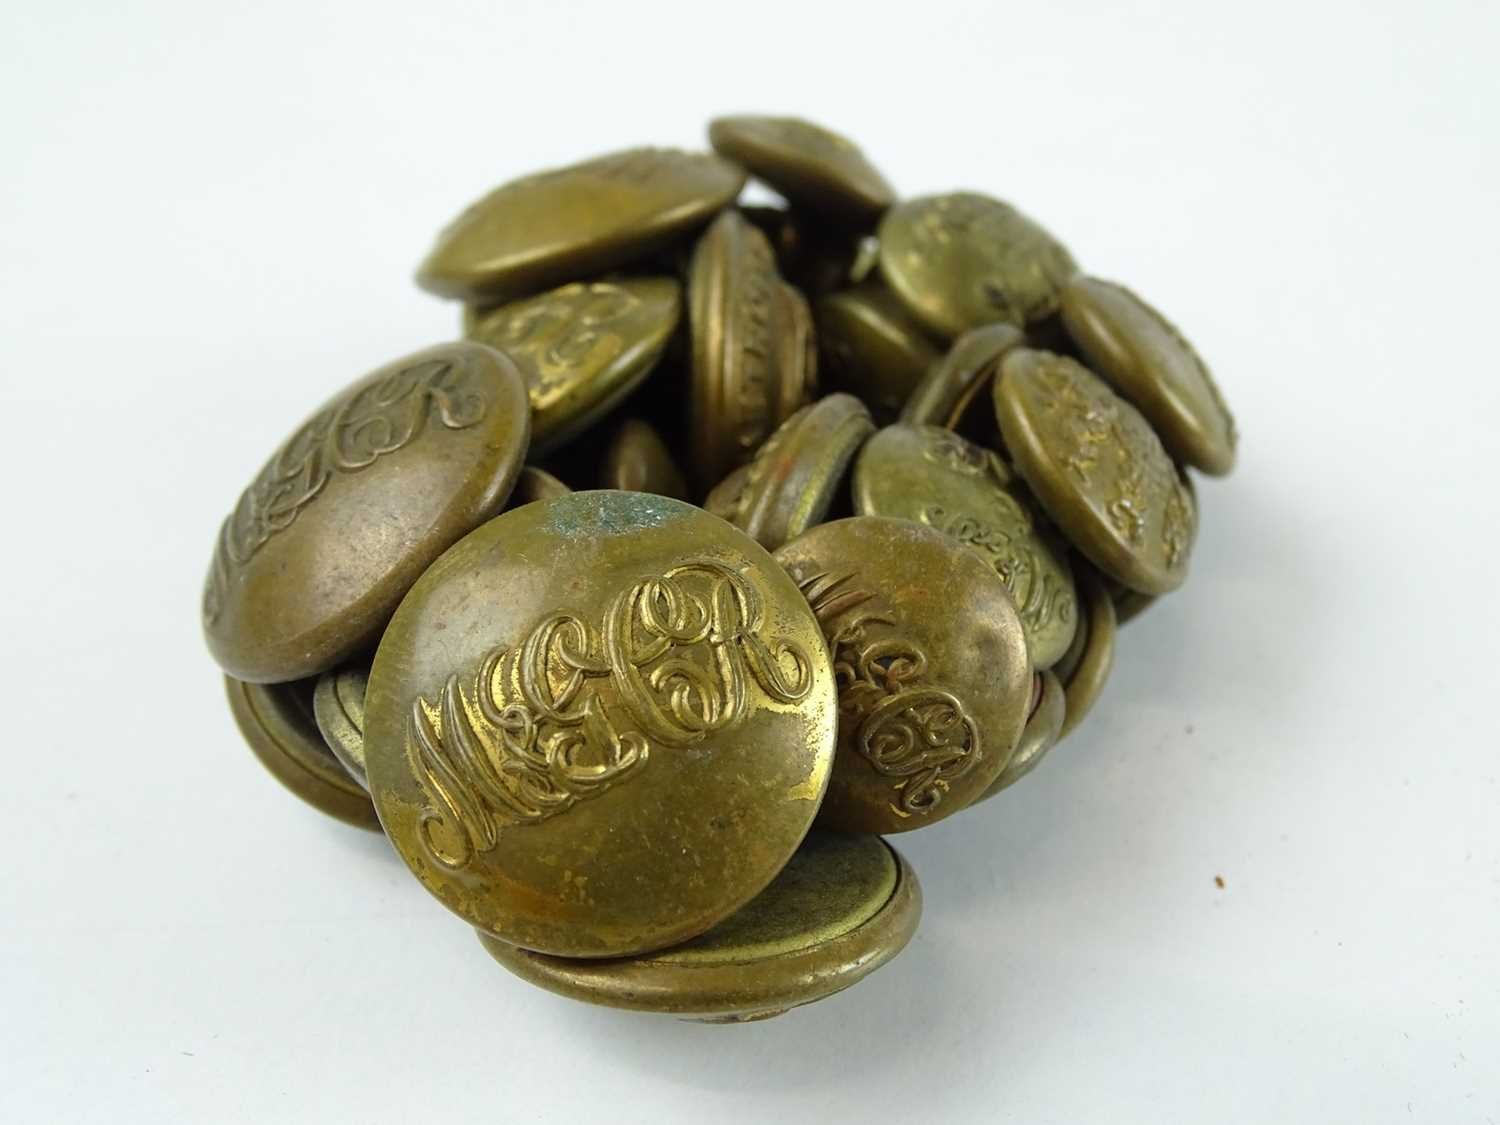 A quantity of brass uniform buttons - all appear to be for the Metropolitan Railway and associated - Image 3 of 6